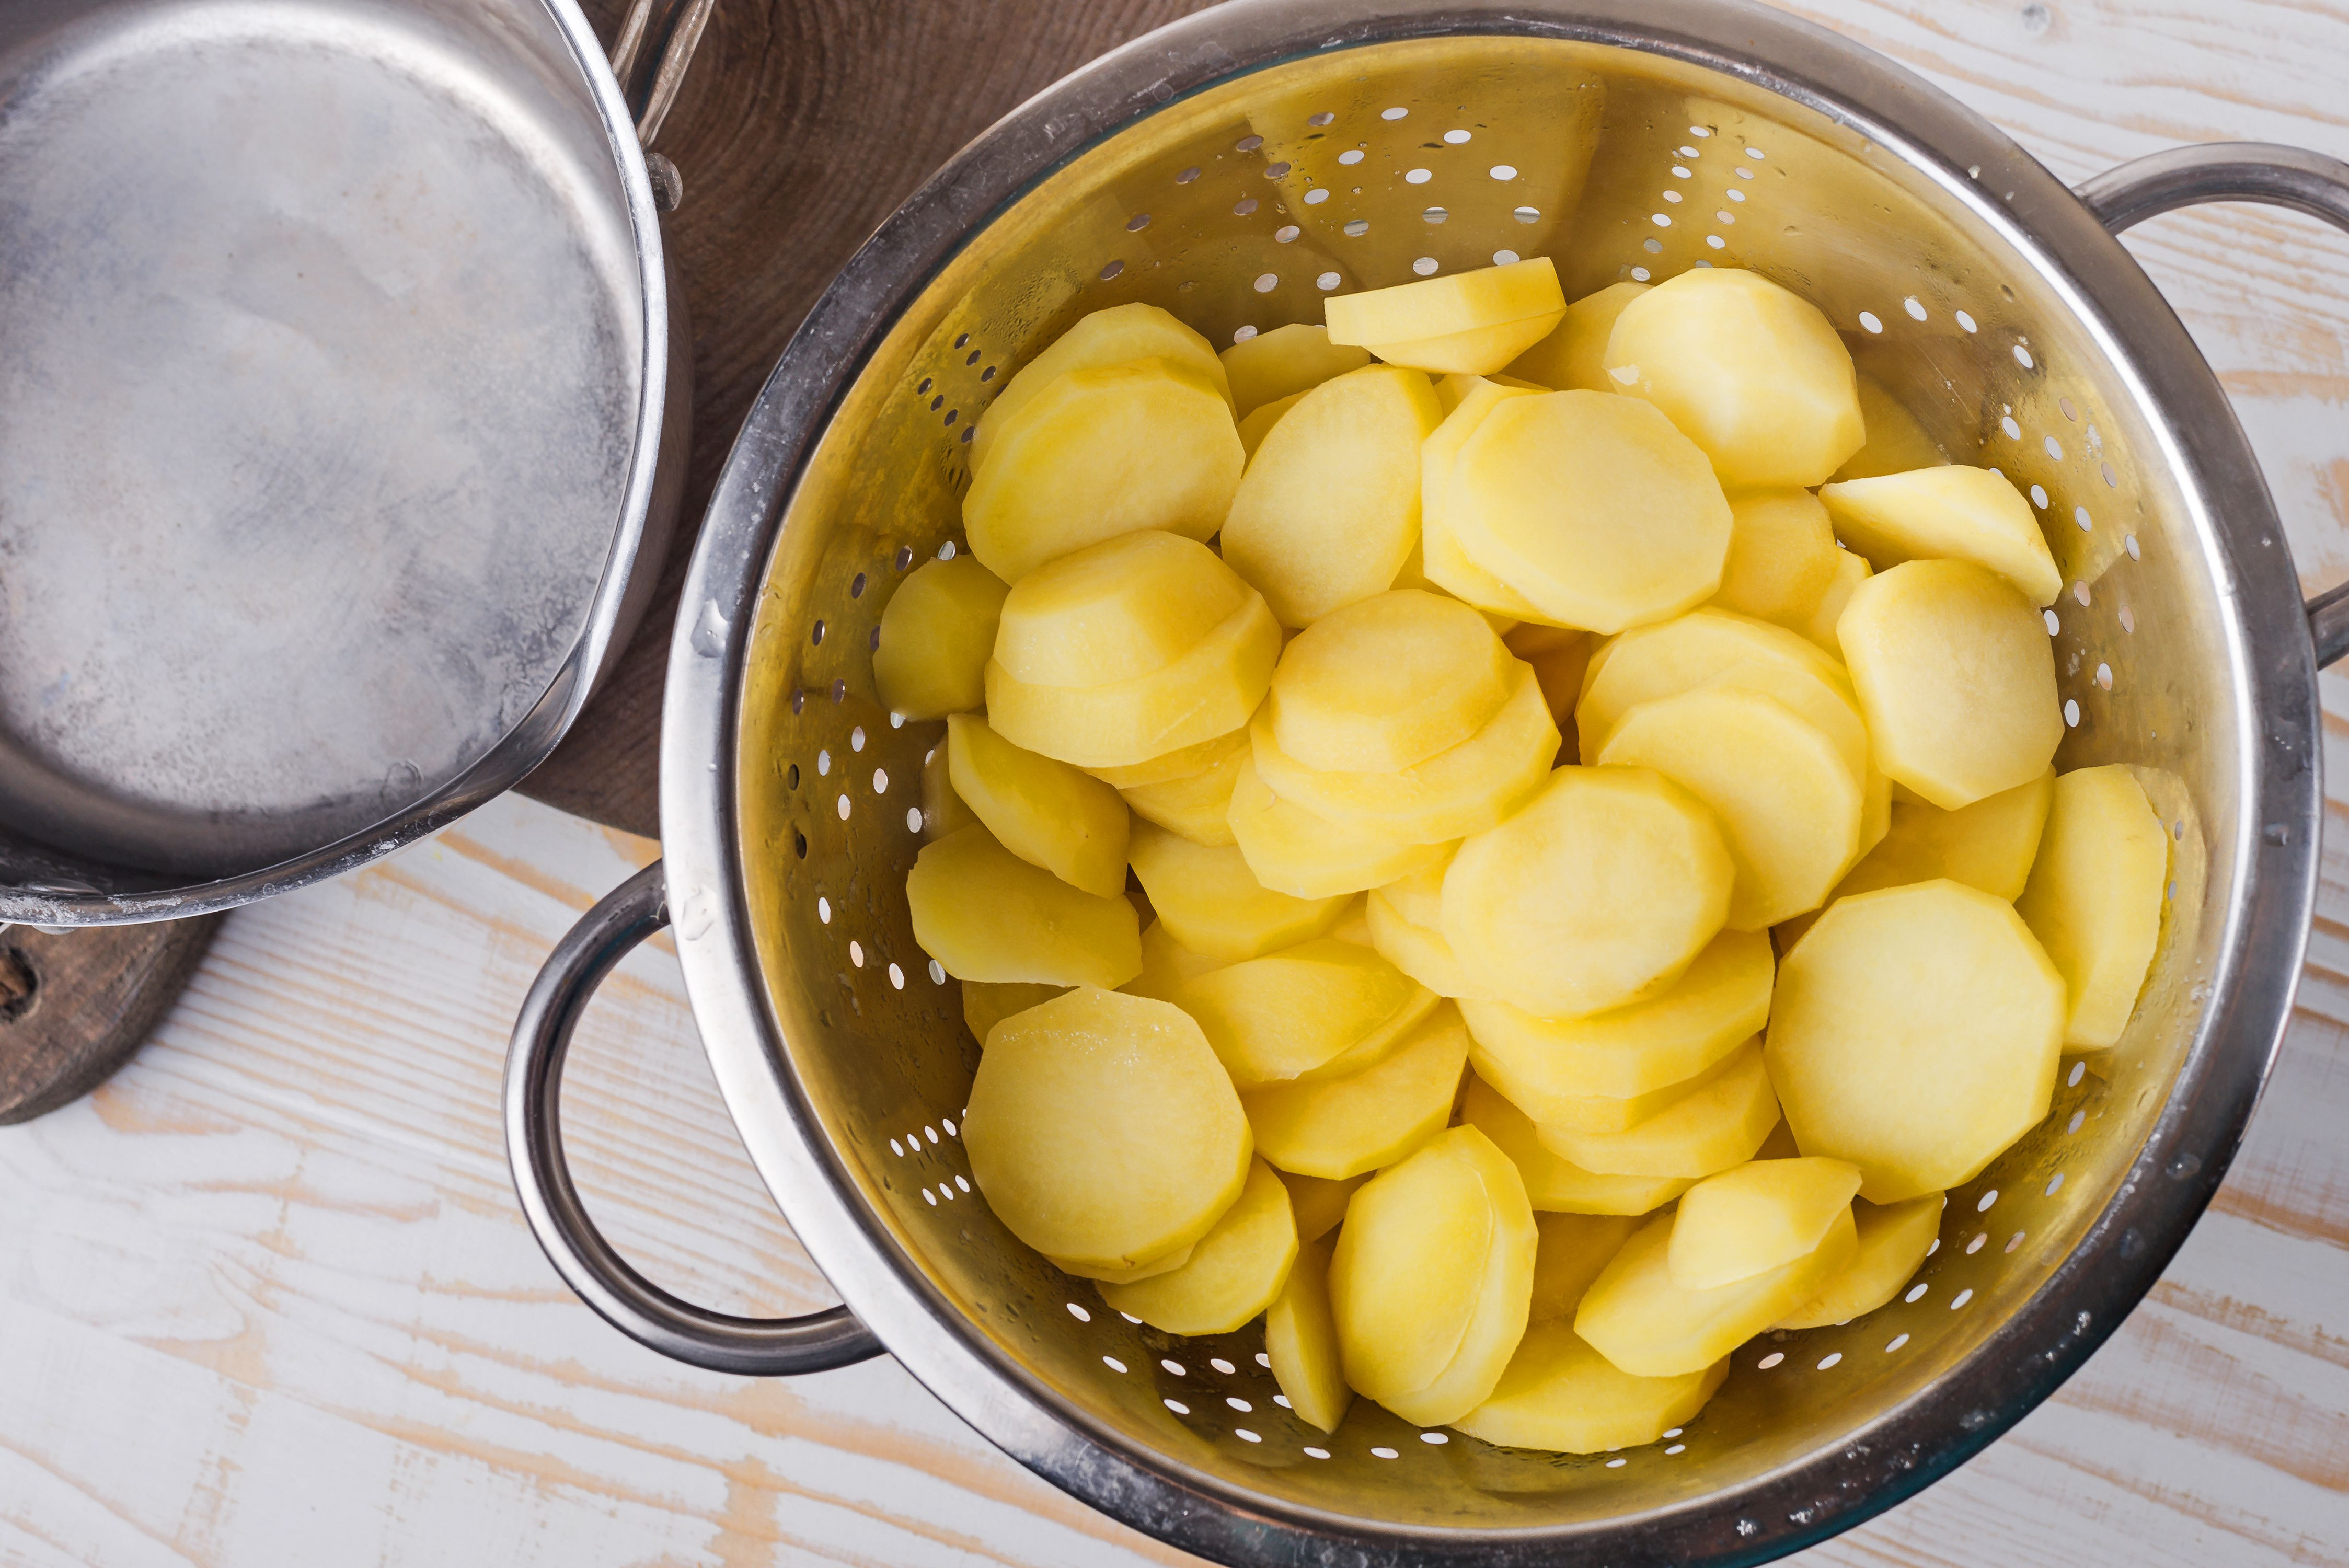 Place potatoes in colander